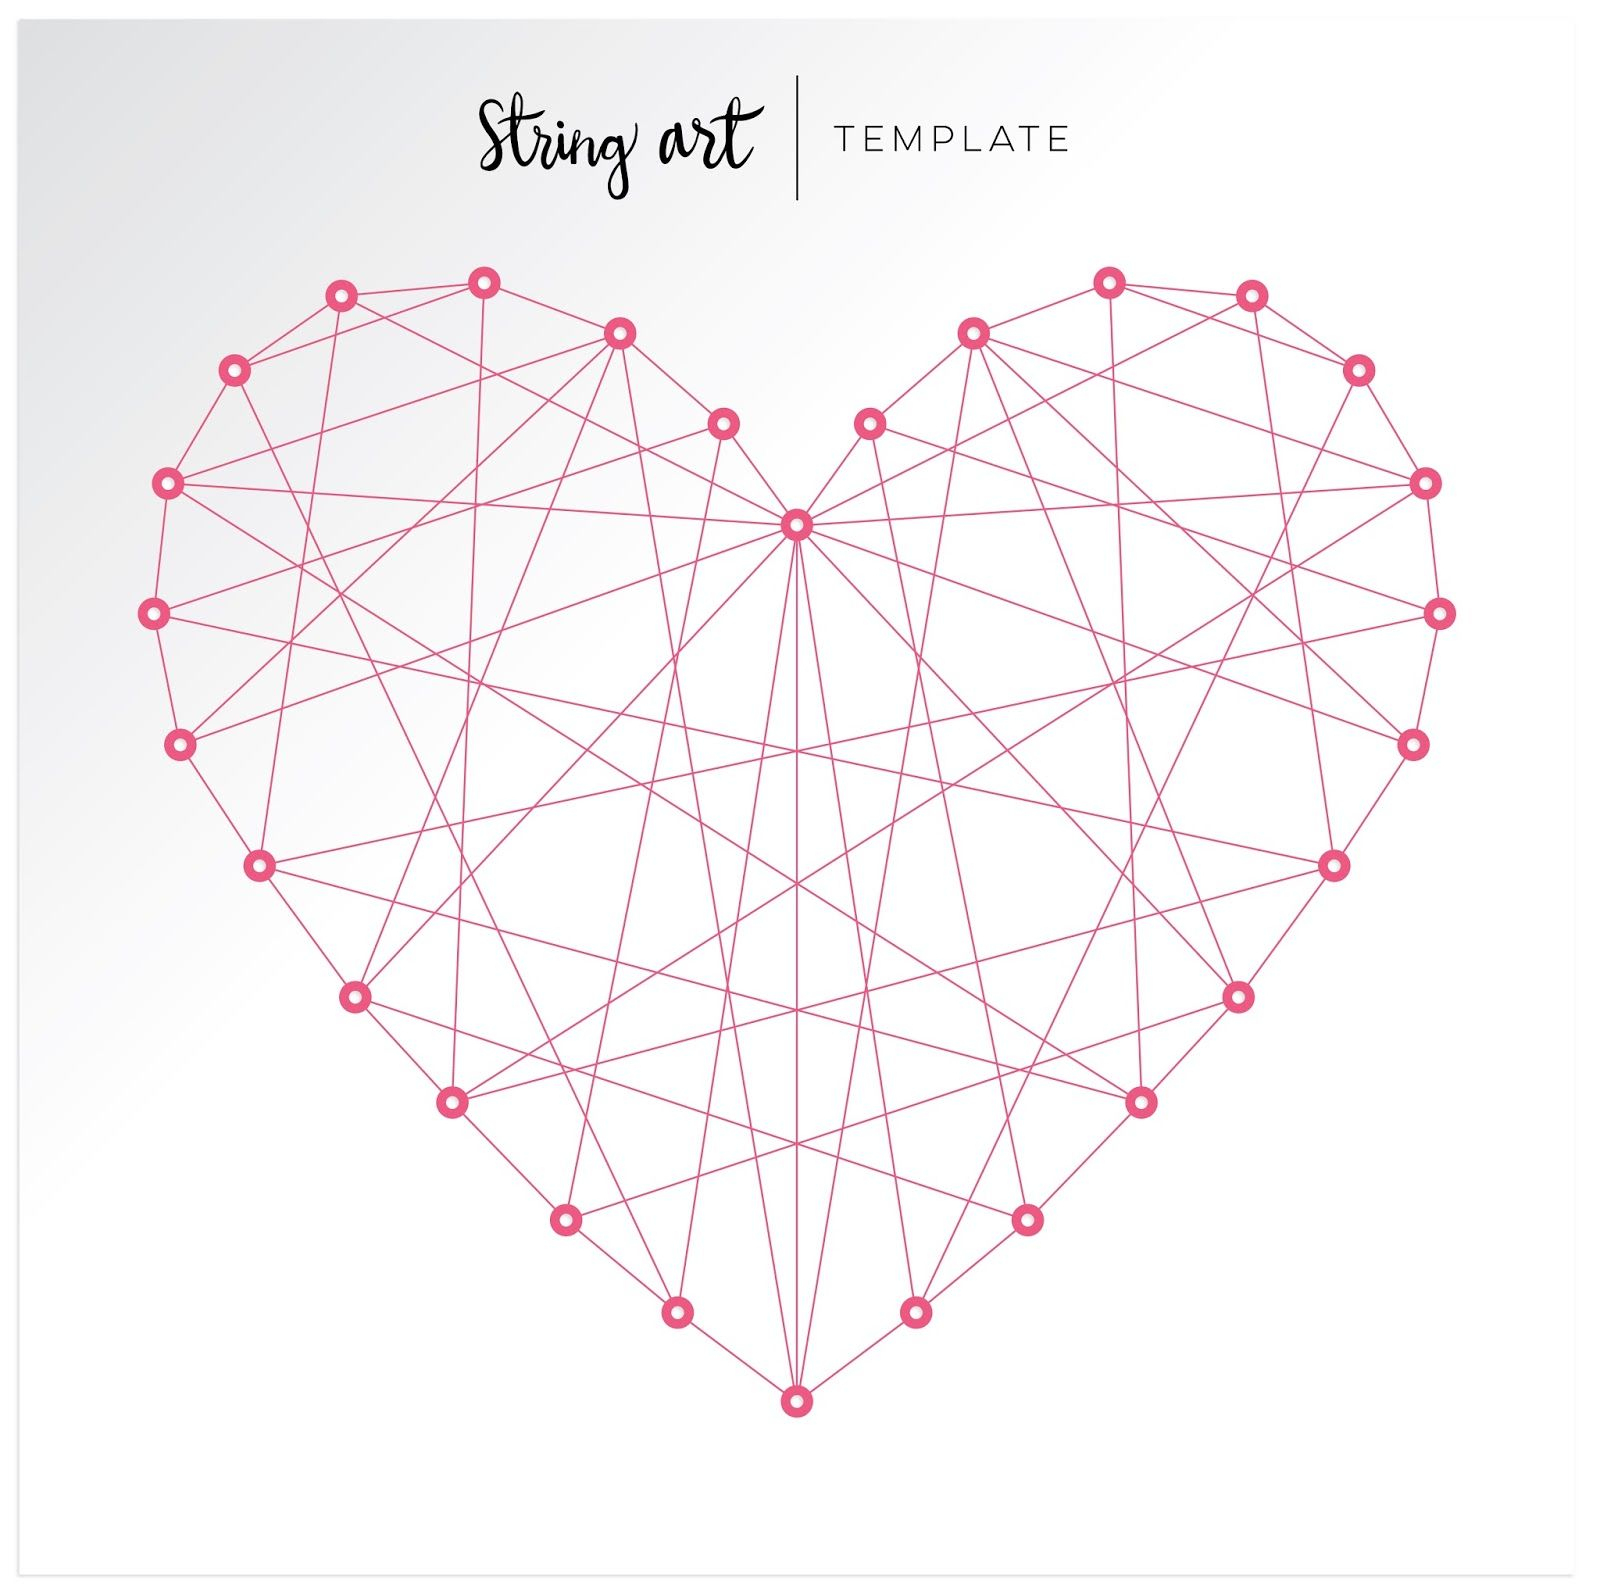 Fancy Freepaige Evans | Flipbook | Pinterest | String Art - Free Printable String Art Patterns With Instructions